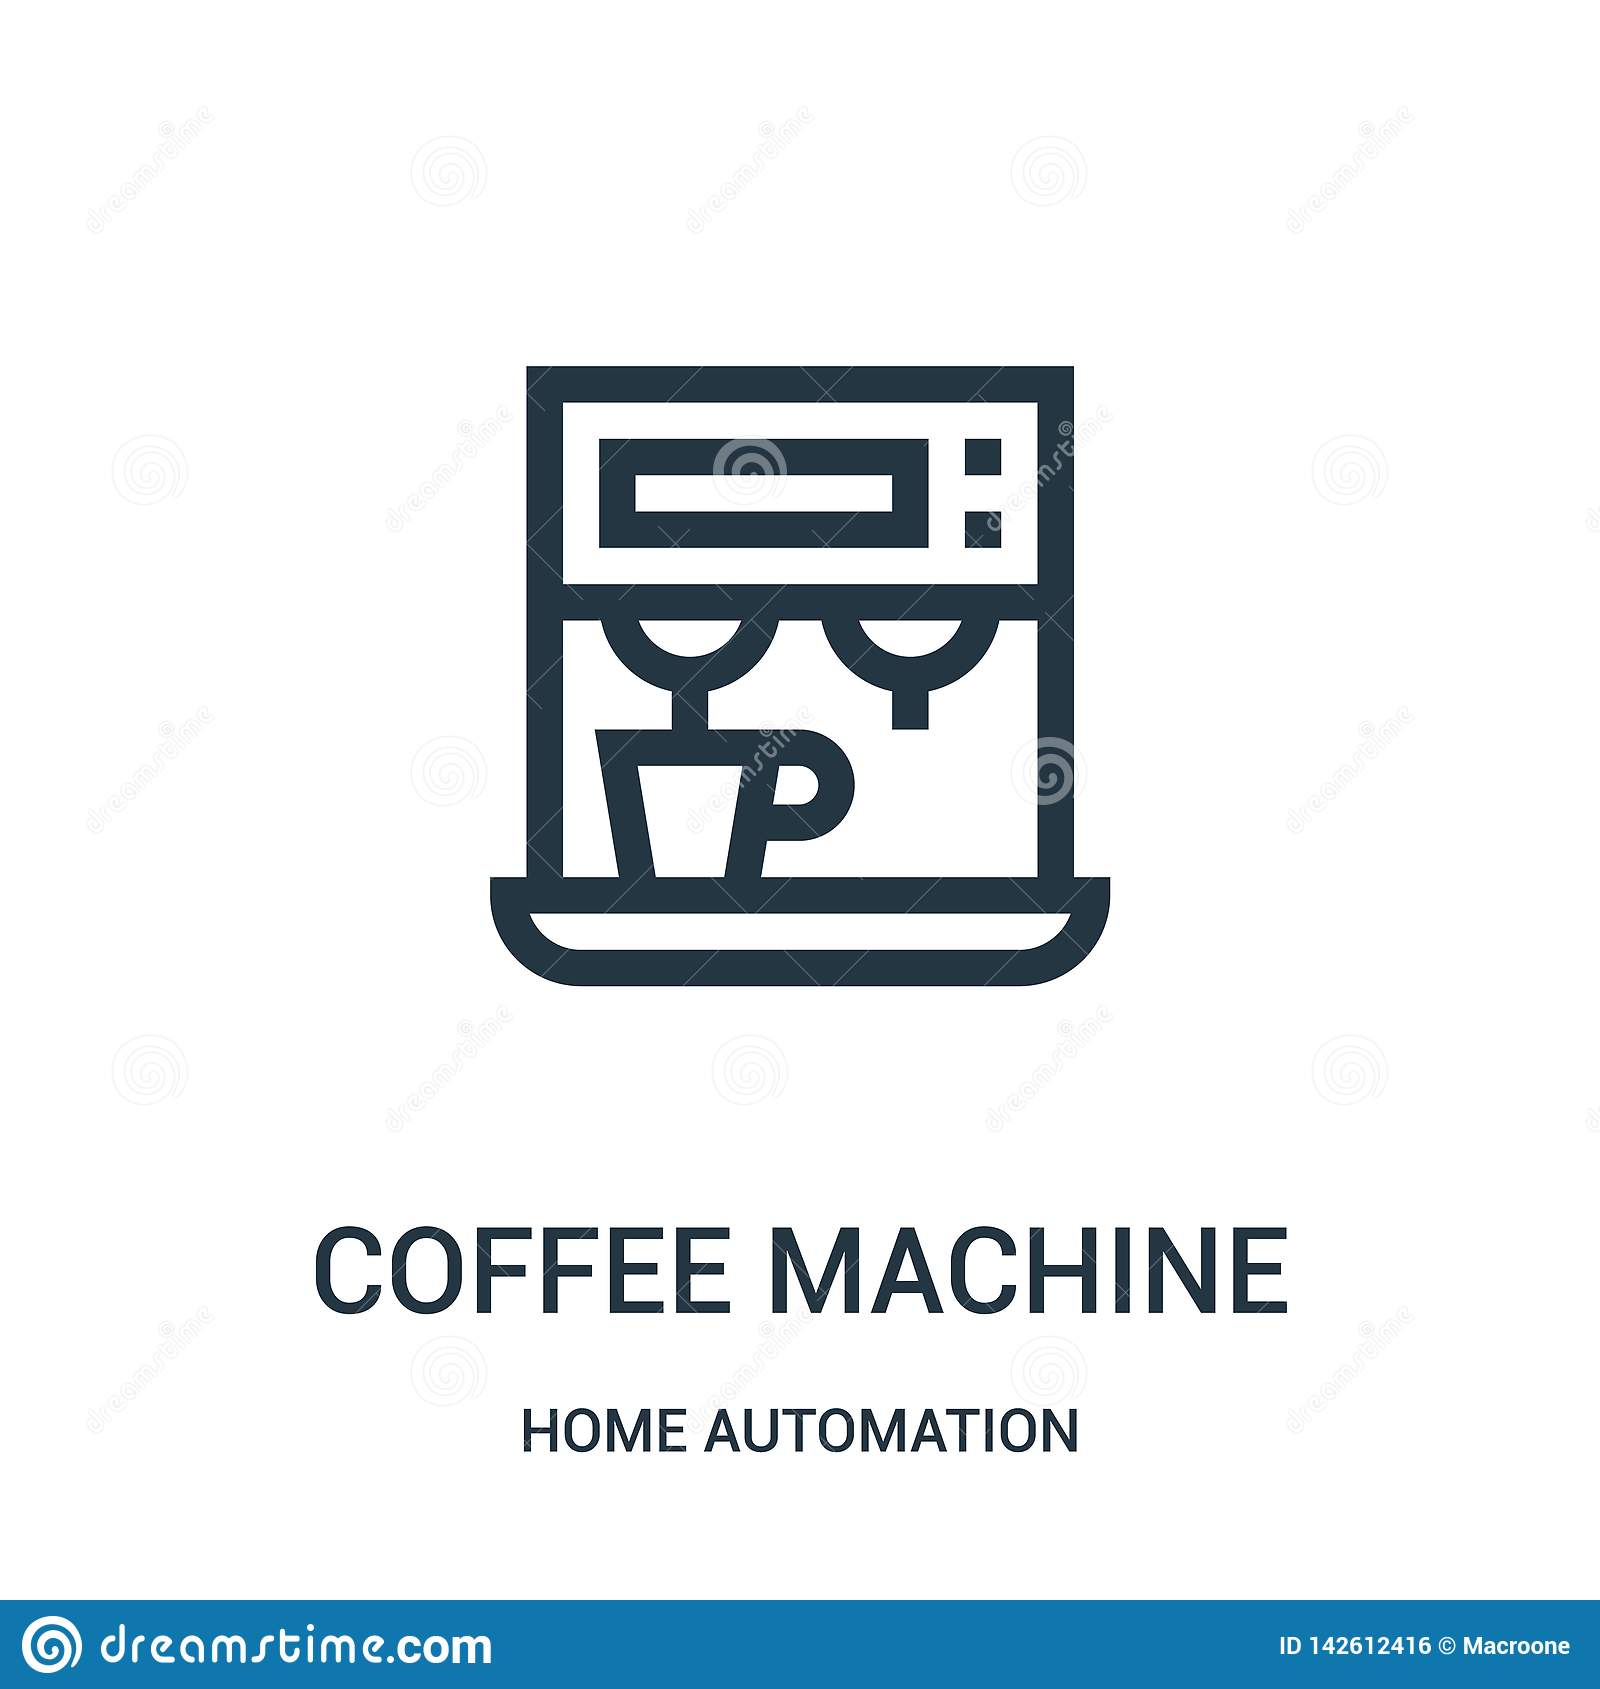 coffee machine icon vector from home automation collection. Thin line coffee machine outline icon vector illustration. Linear